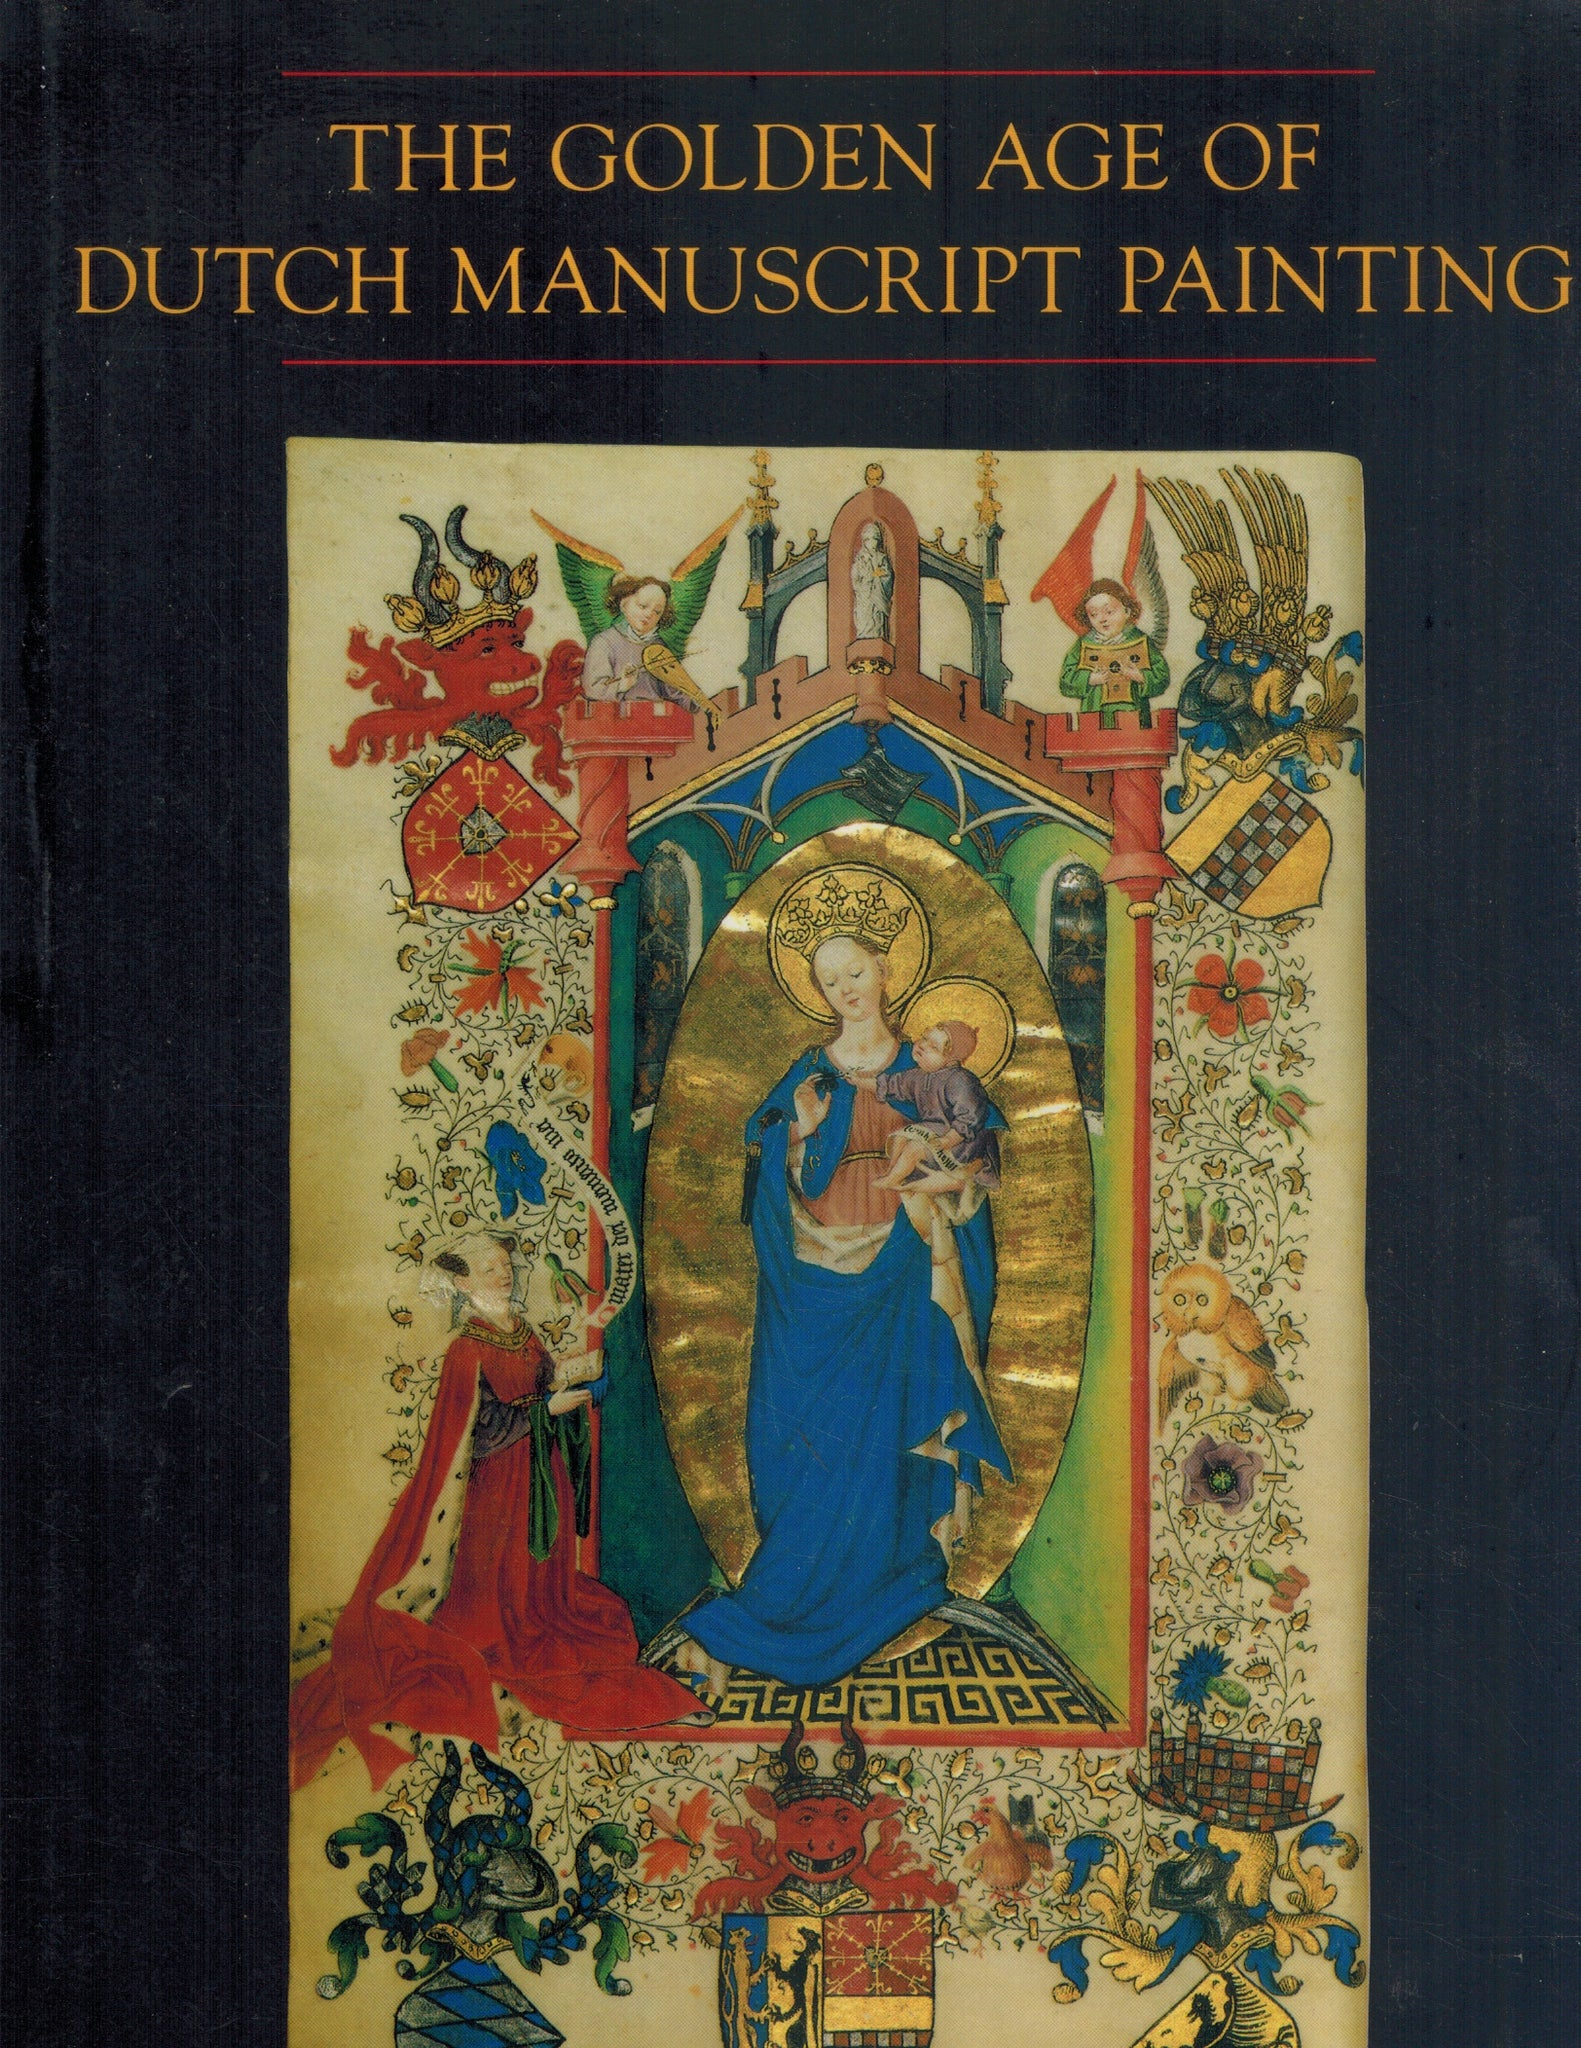 THE GOLDEN AGE OF DUTCH MANUSCRIPT PAINTING  by Marrow, James